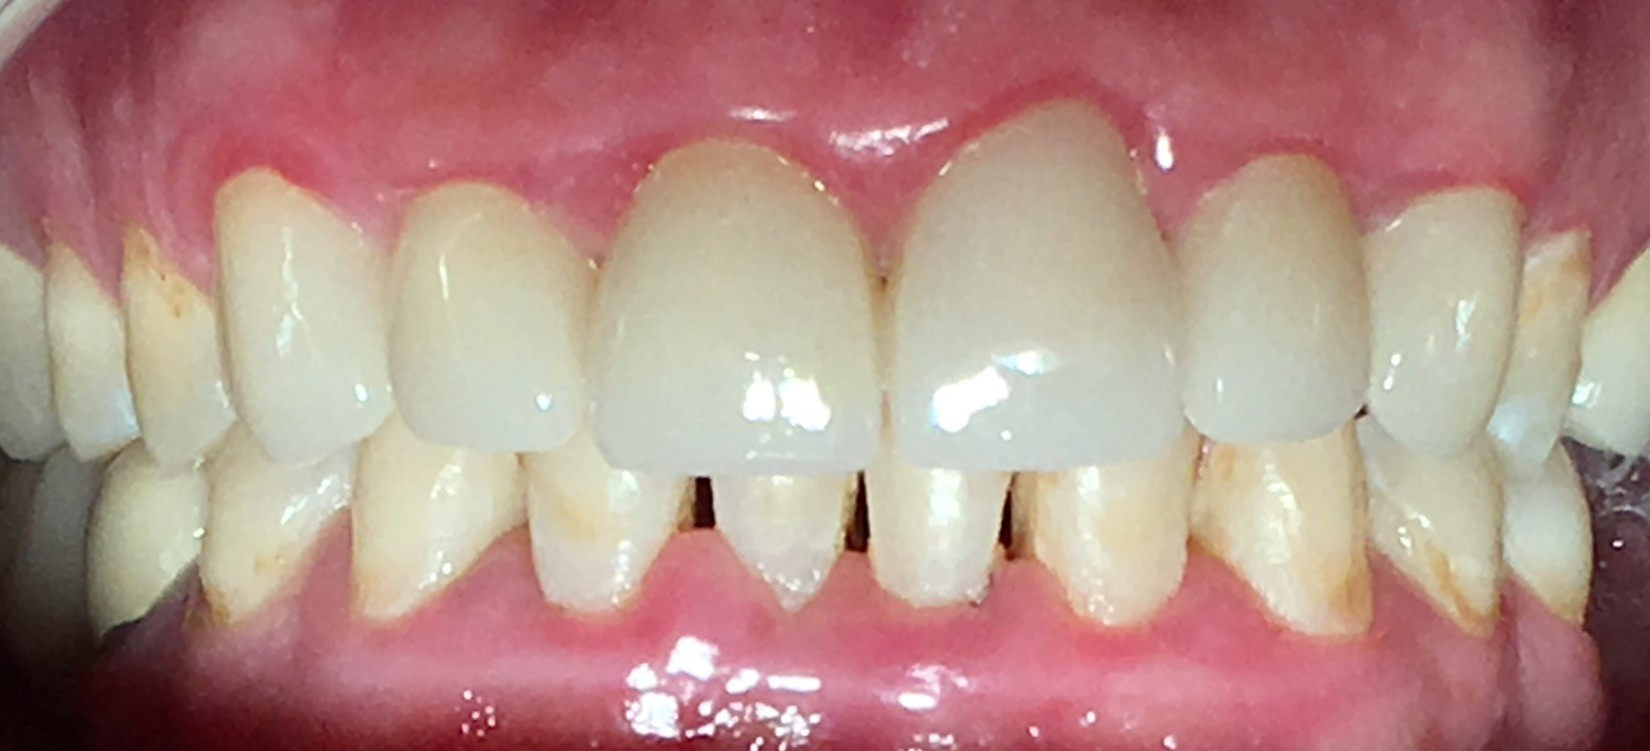 AFTER | Full mouth crown and bridge case